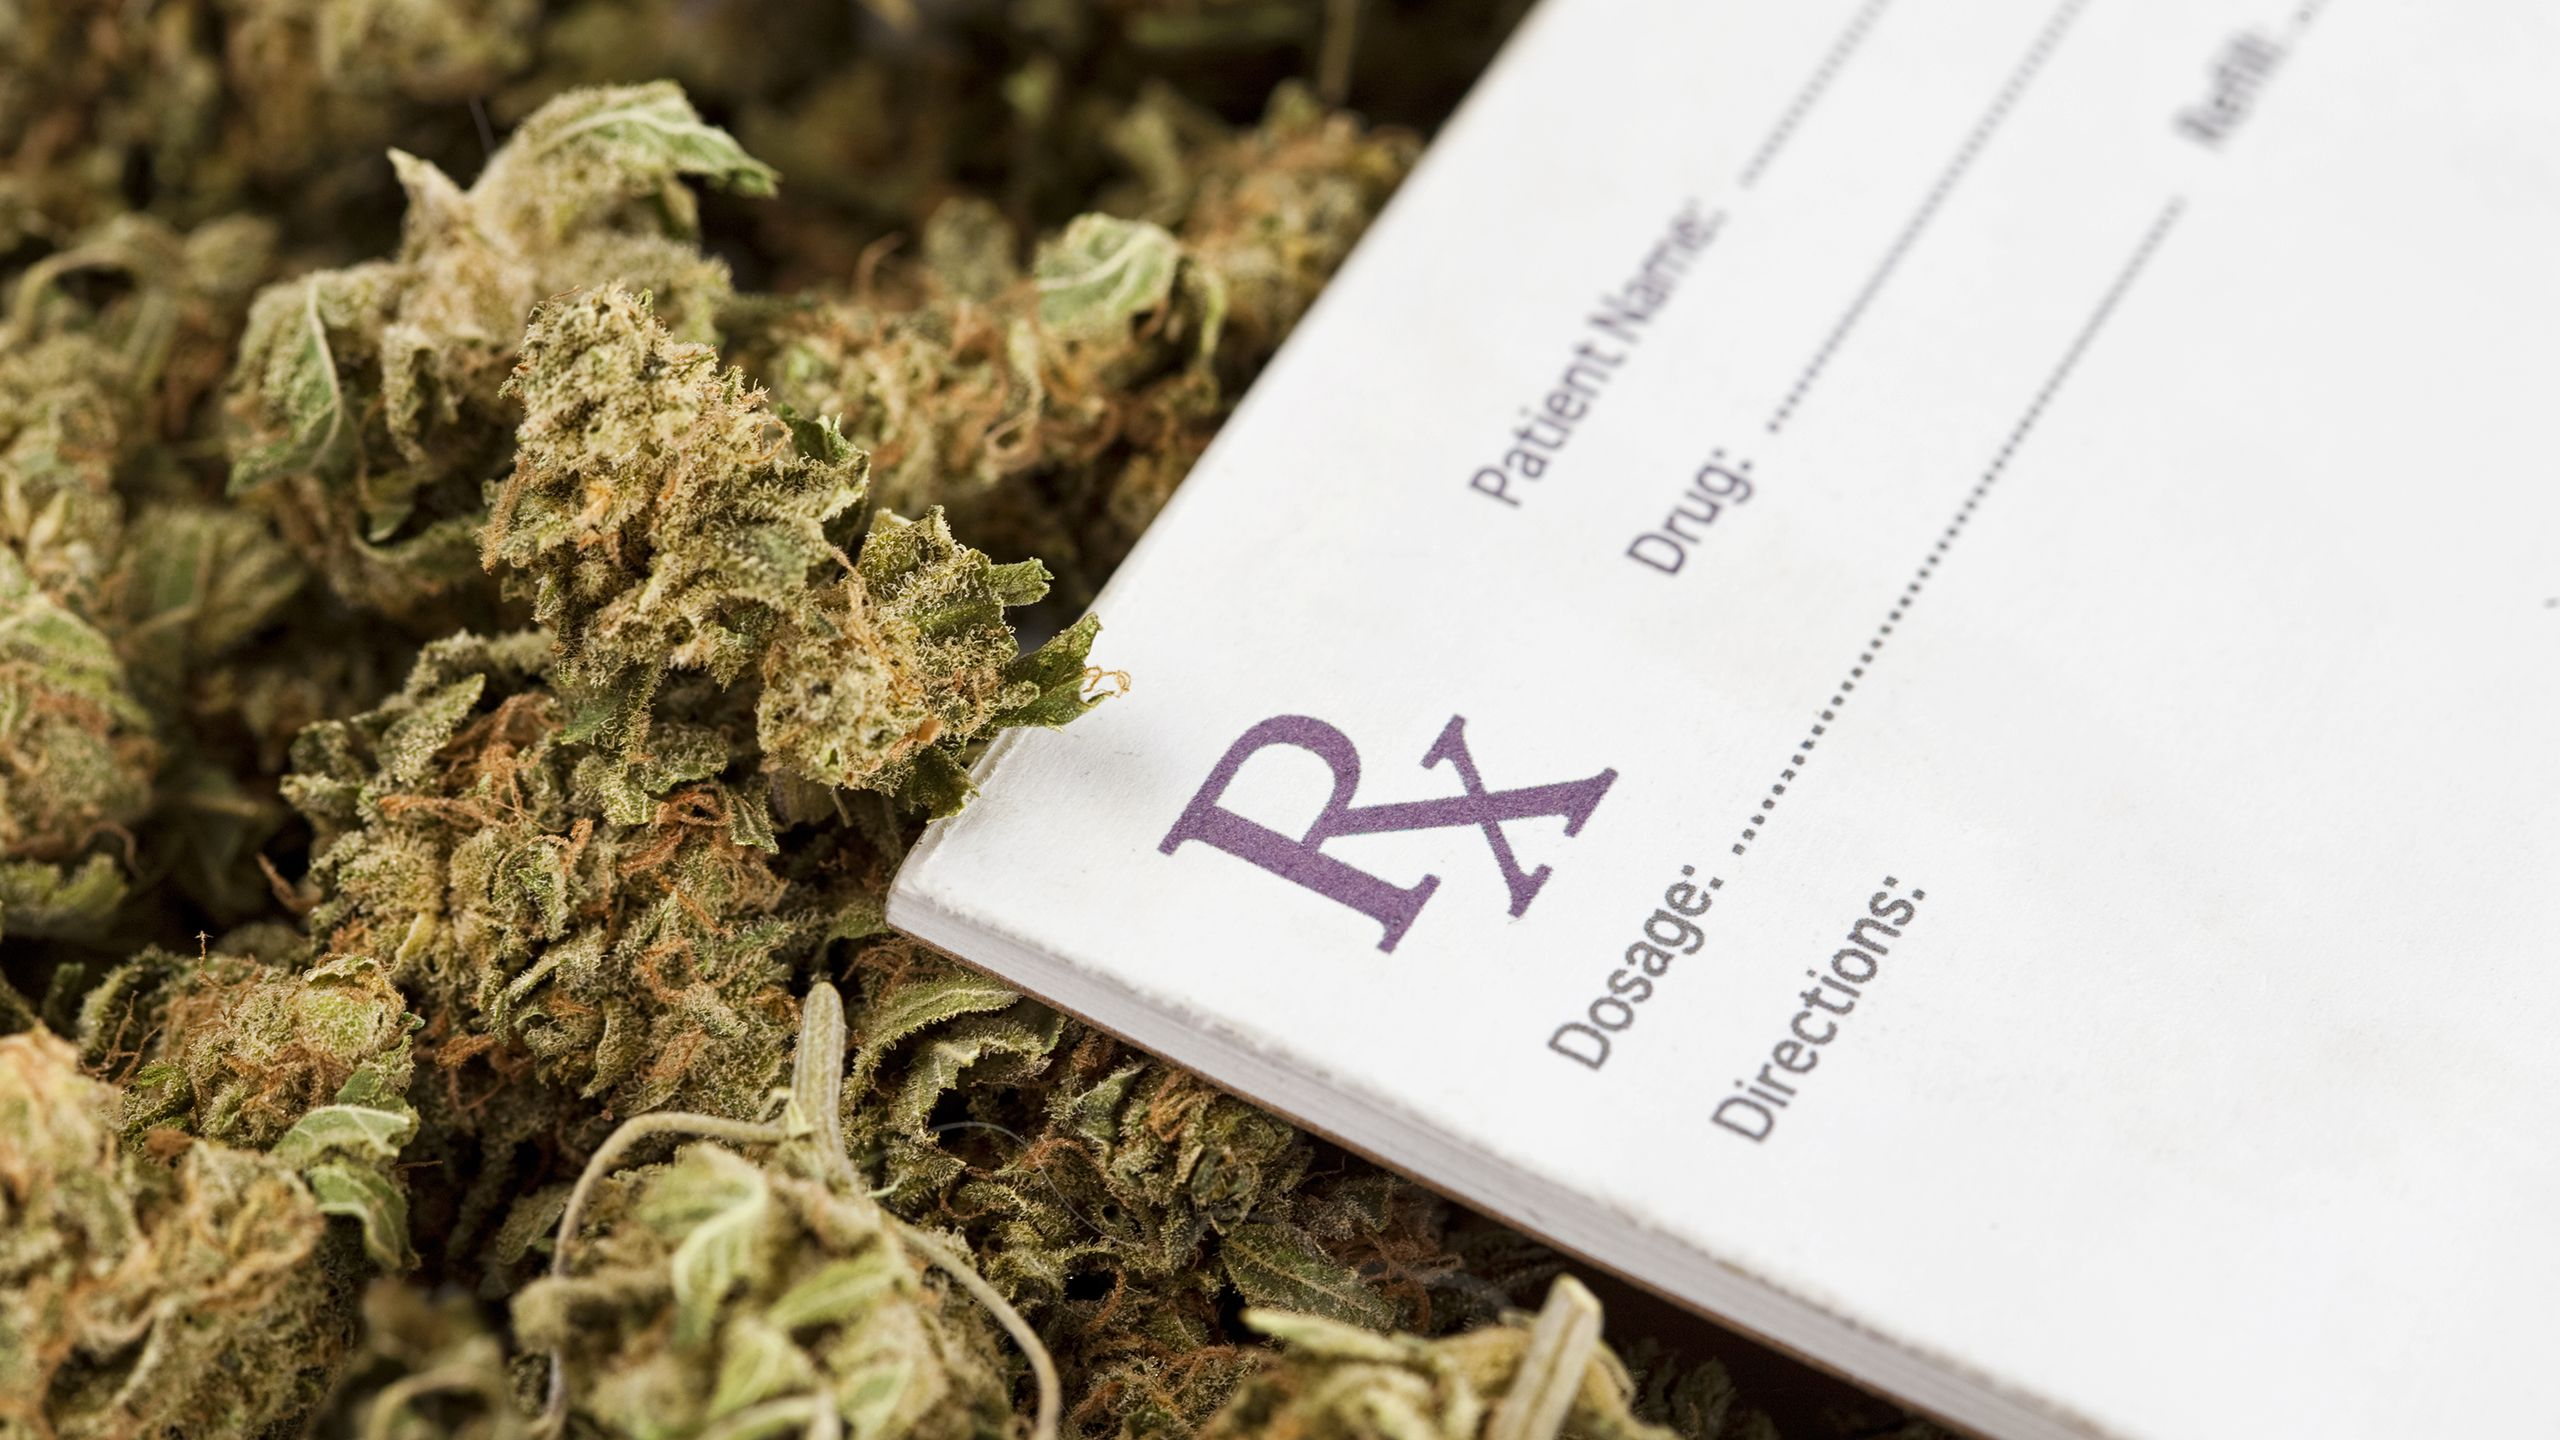 Can Medical Marijuana Laws Curb Opioid Use?